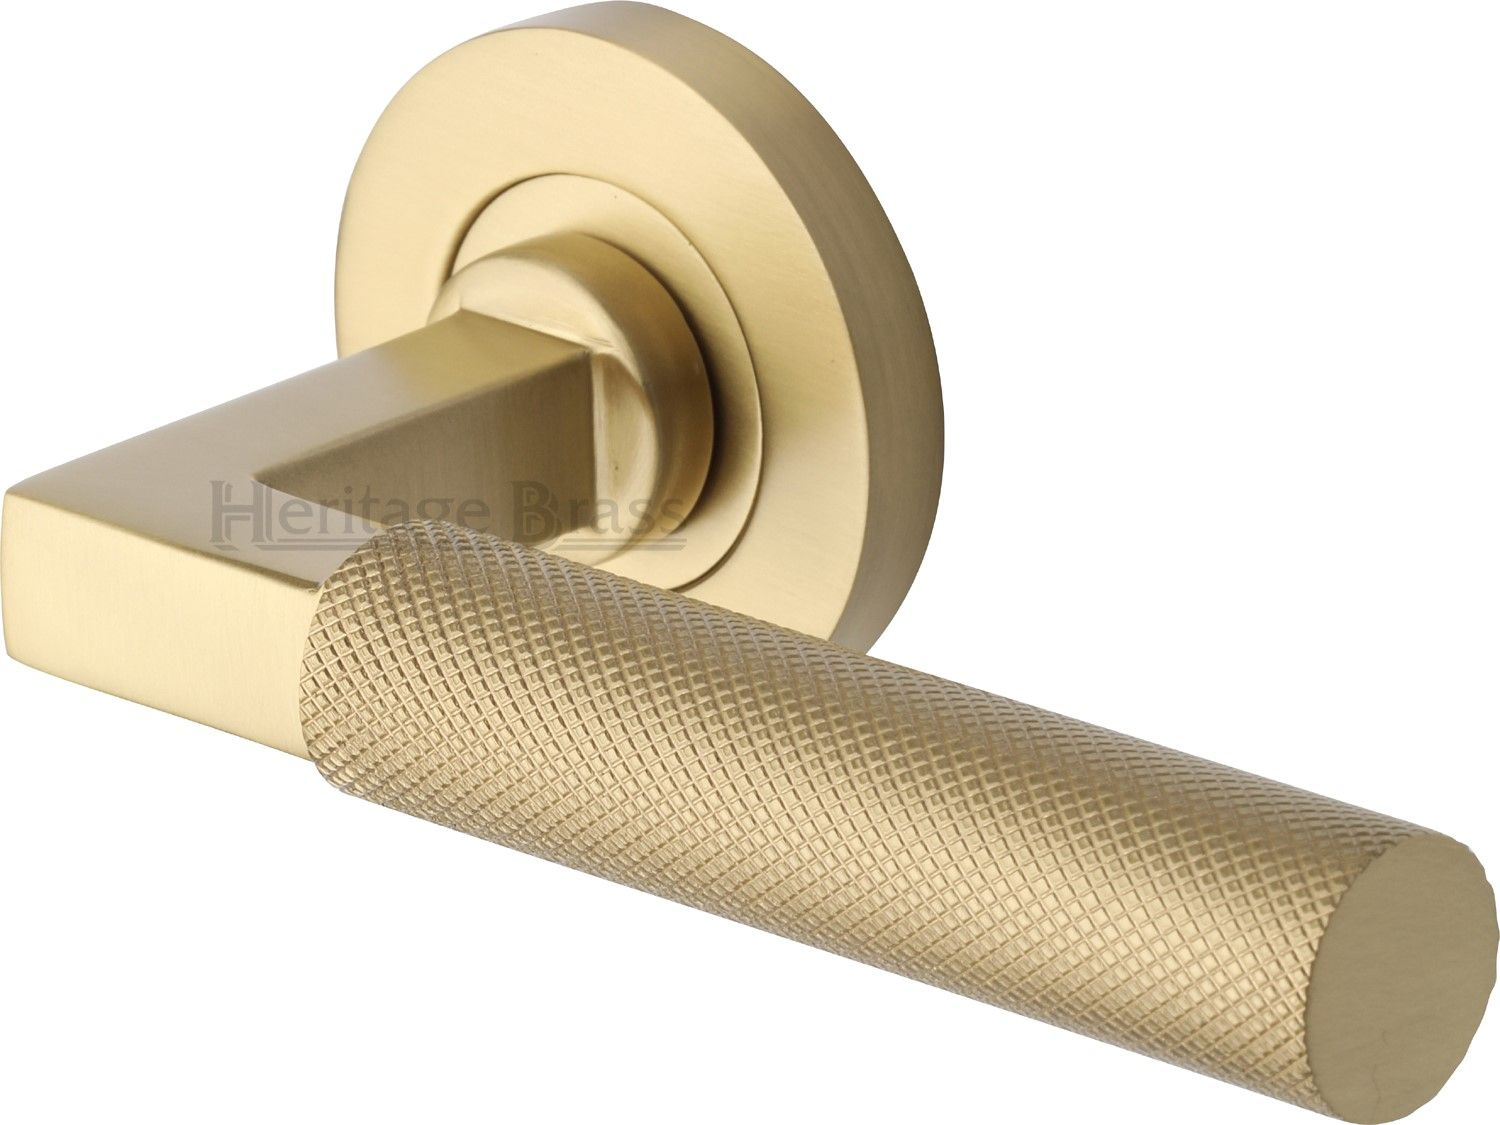 Heritage Brass Brushed Satin Brass Knurled lever door handles ...